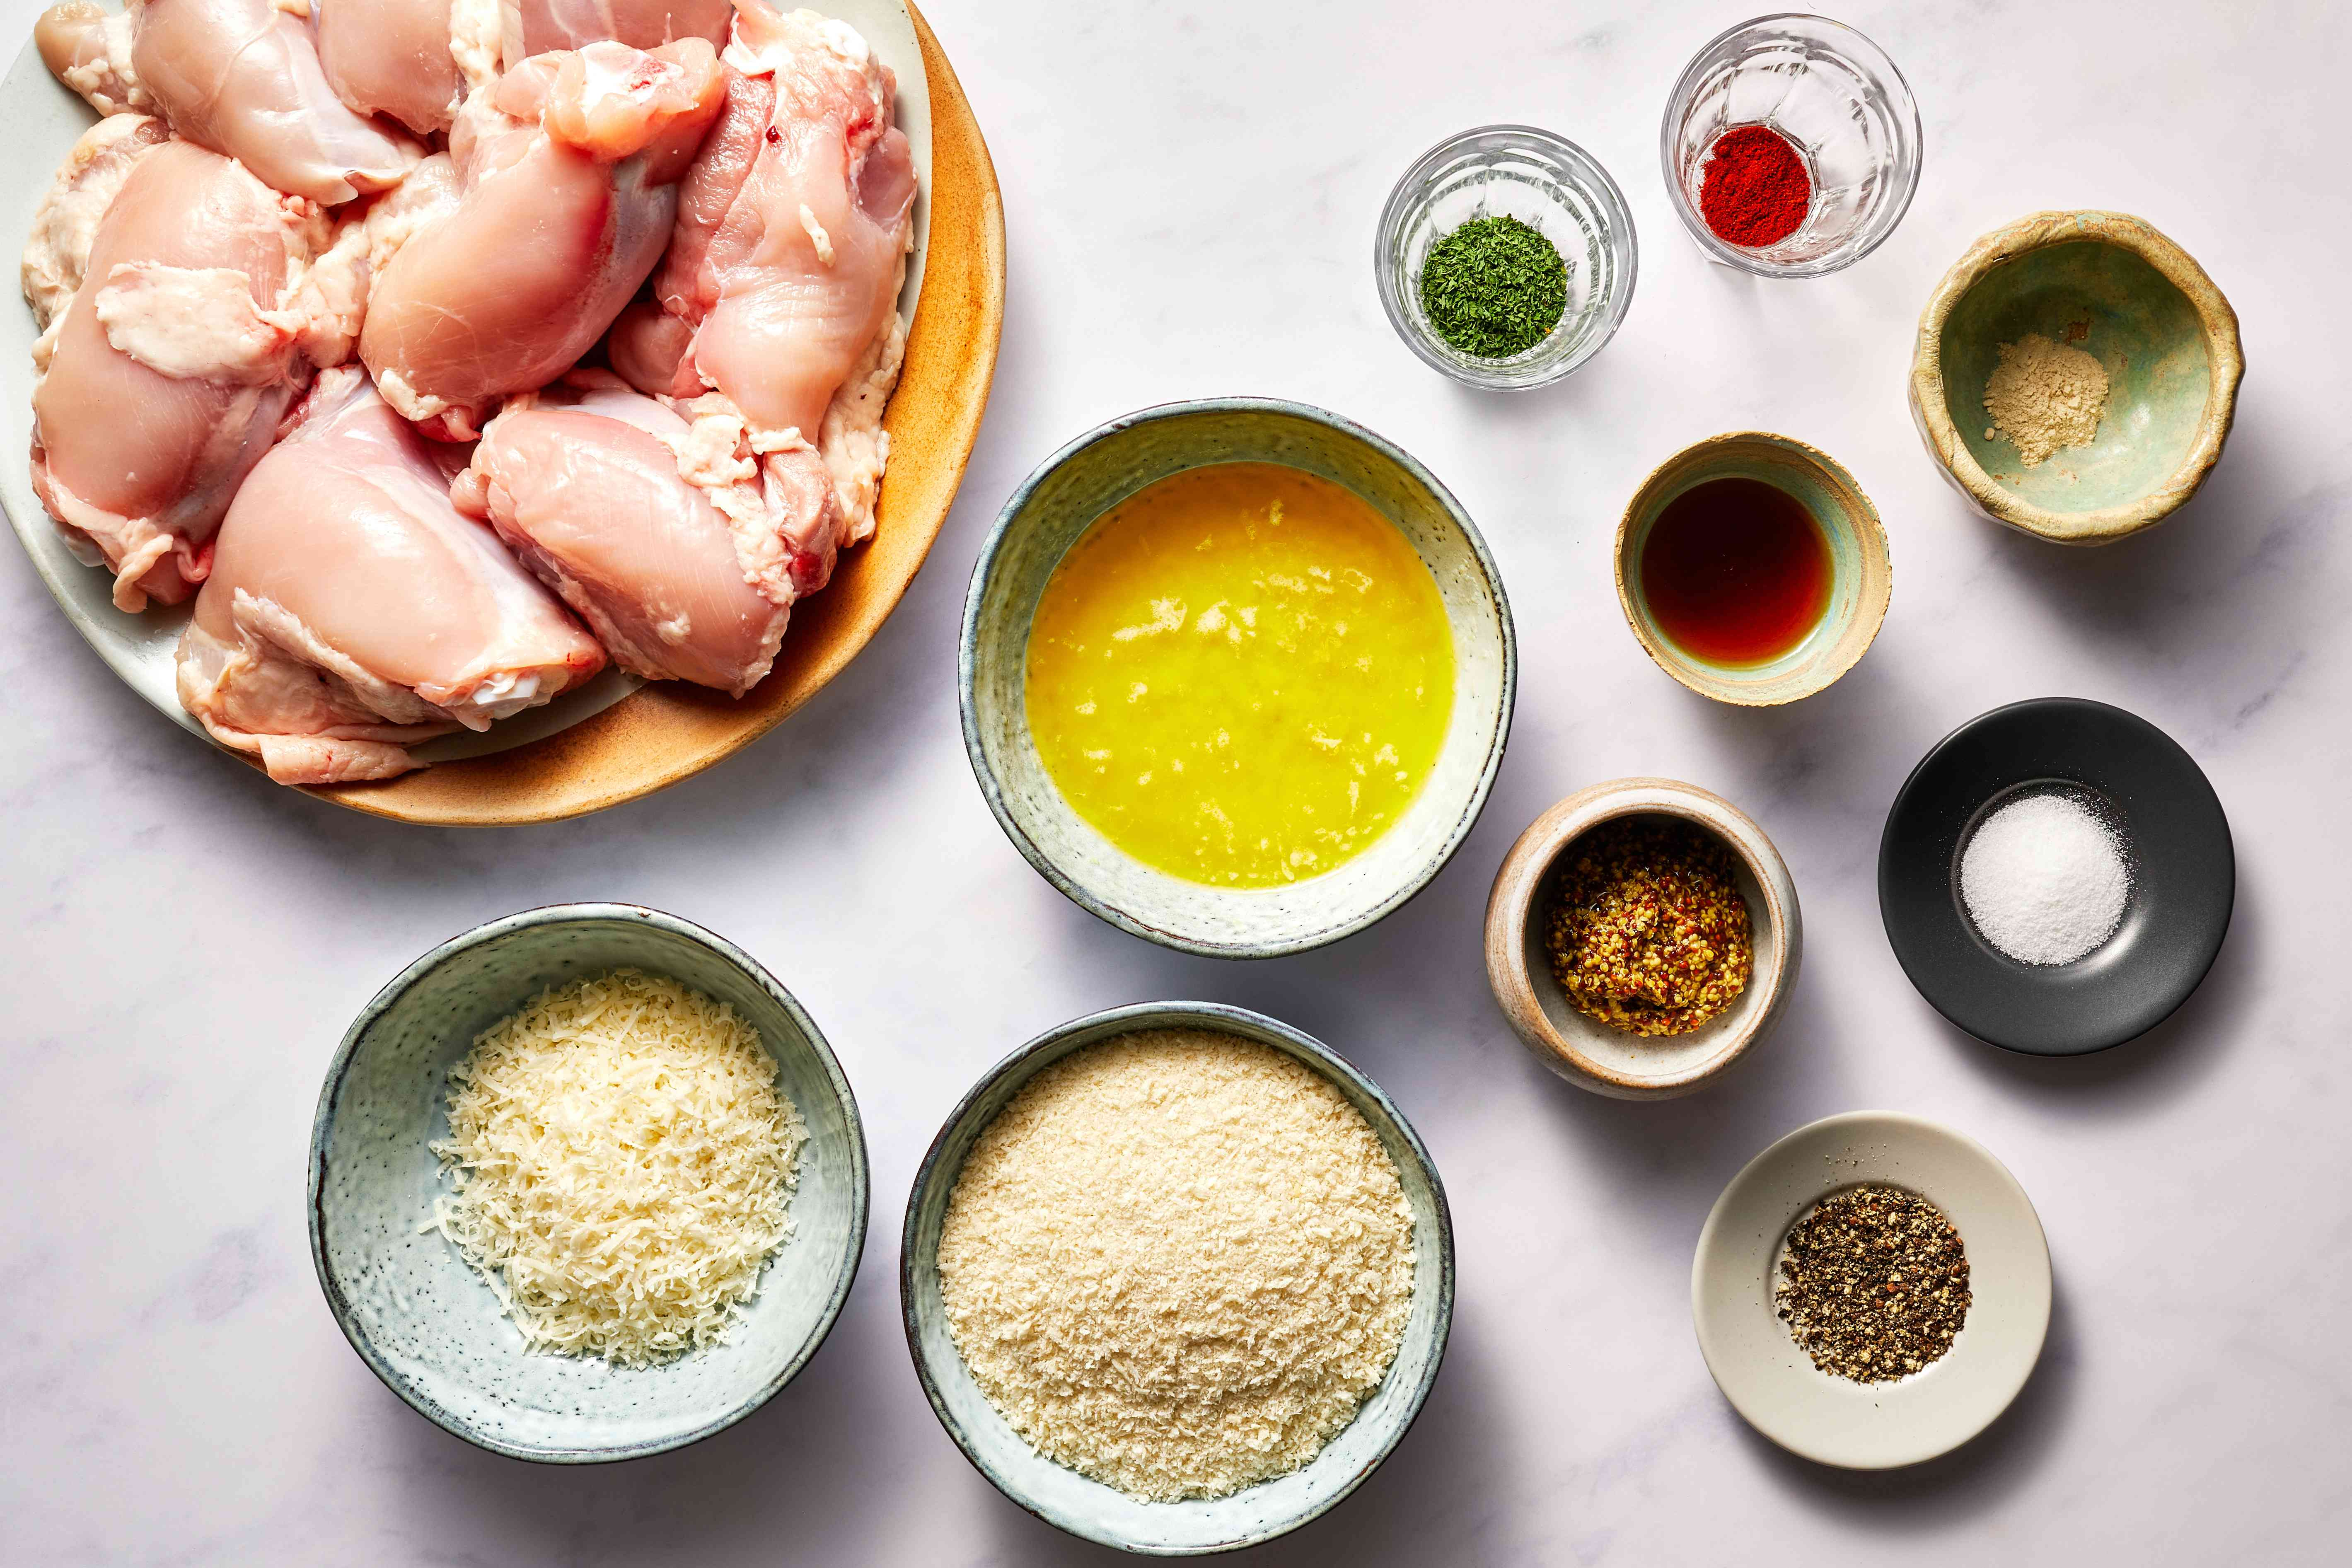 Ingredients for oven baked chicken thighs